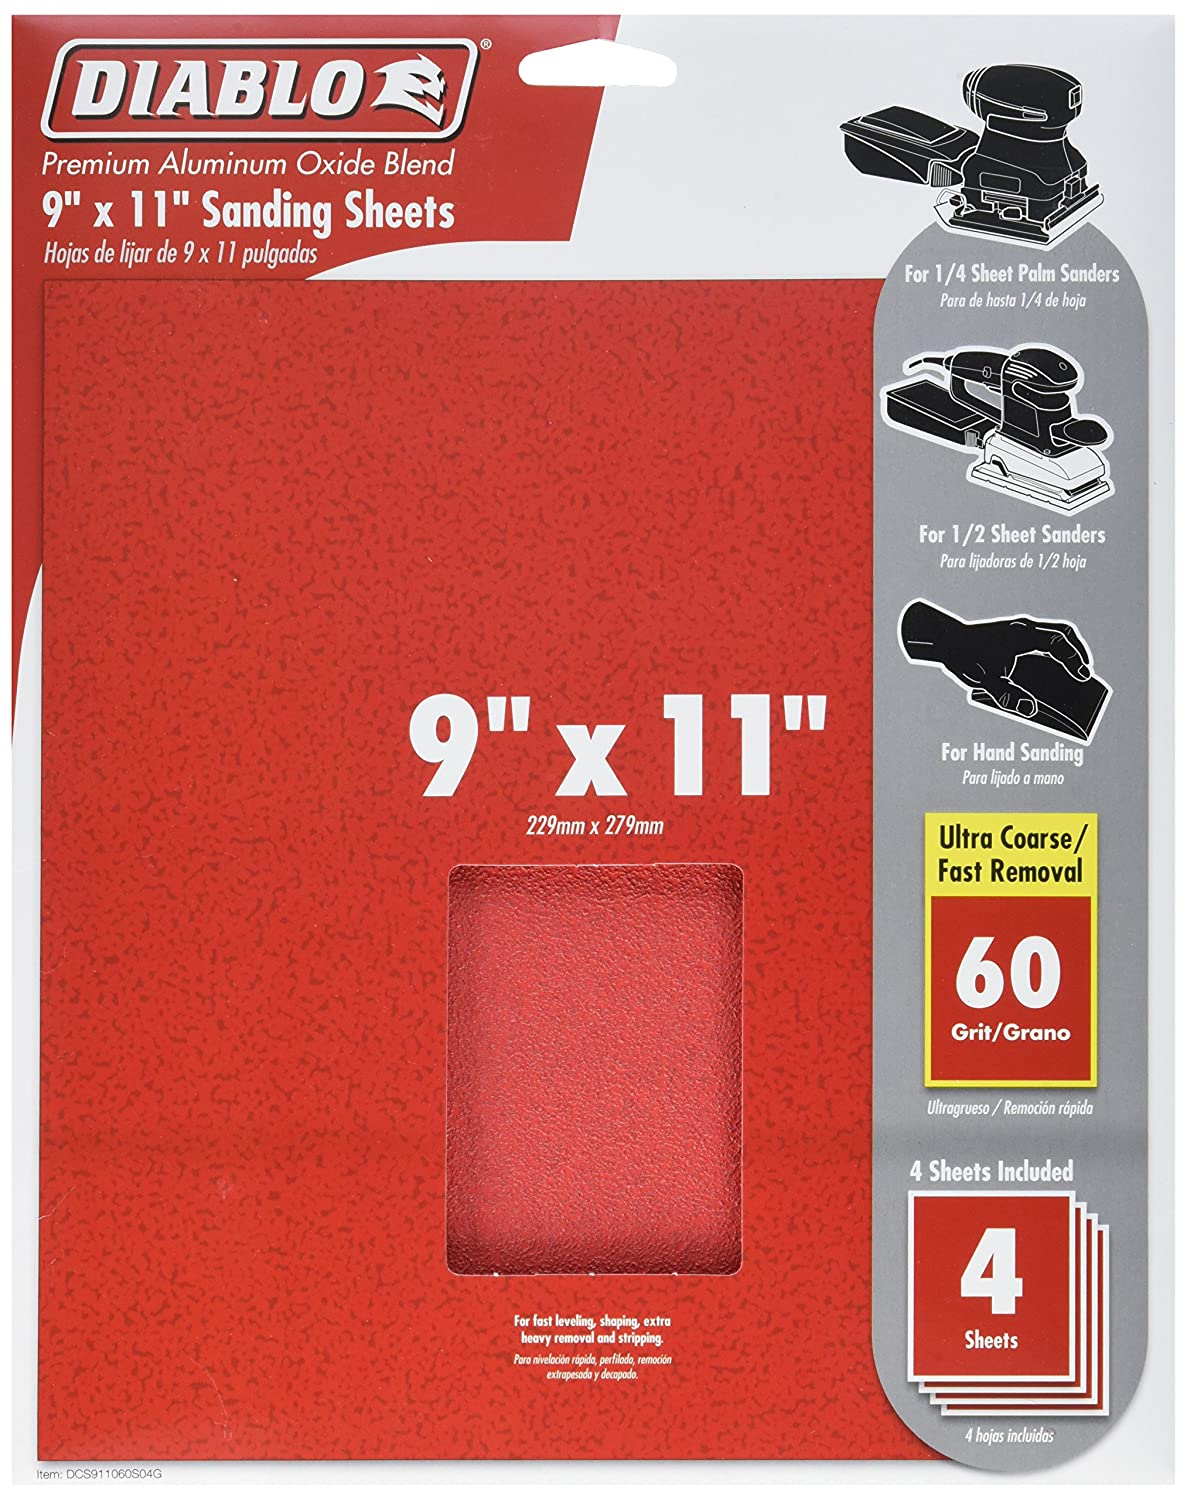 Red 9 x 11 Freud DCS911060S04G Sanding Sheet